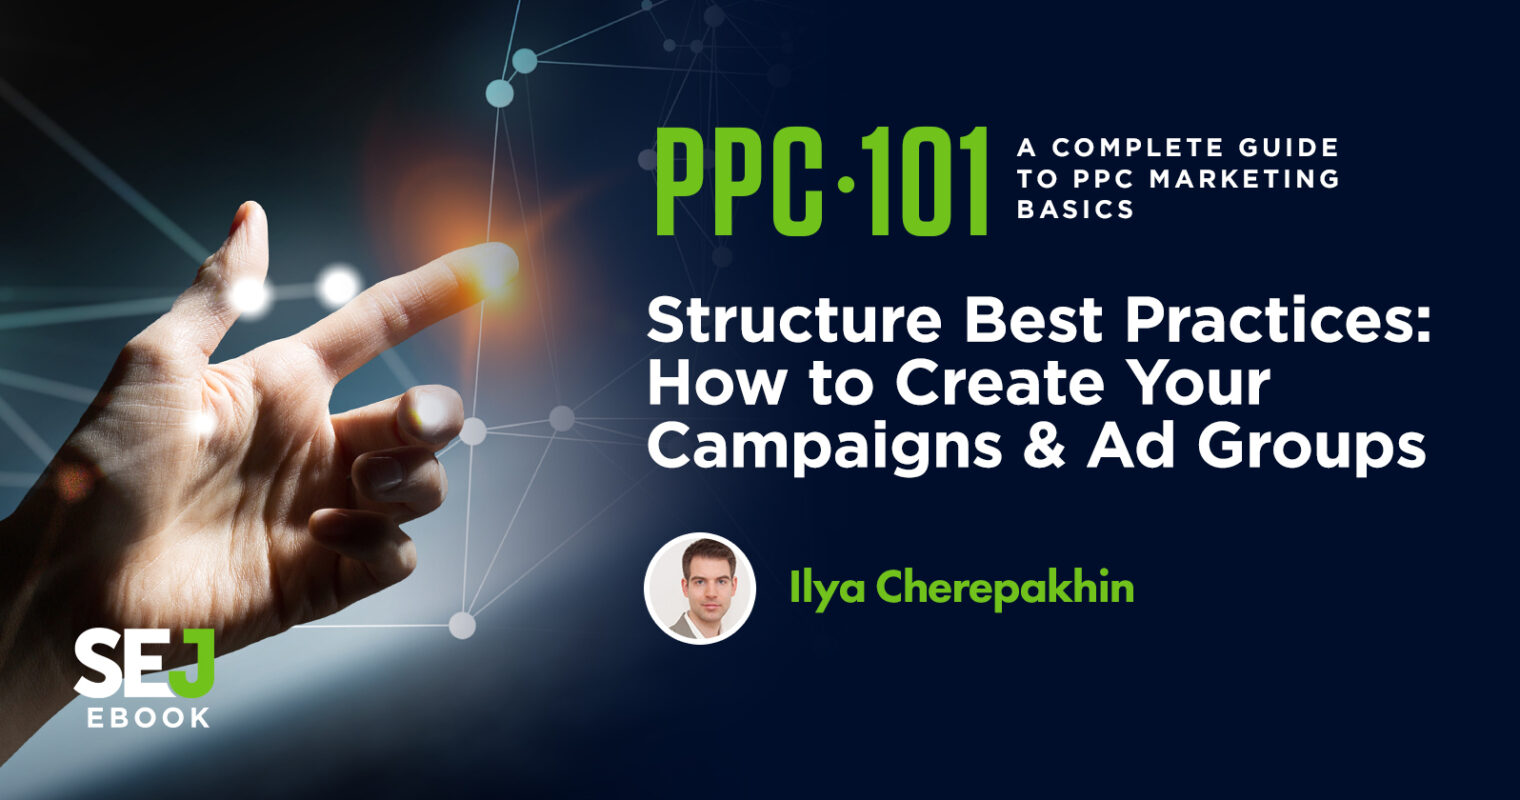 Structure Best Practices: How to Create Your Campaigns & Ad Groups